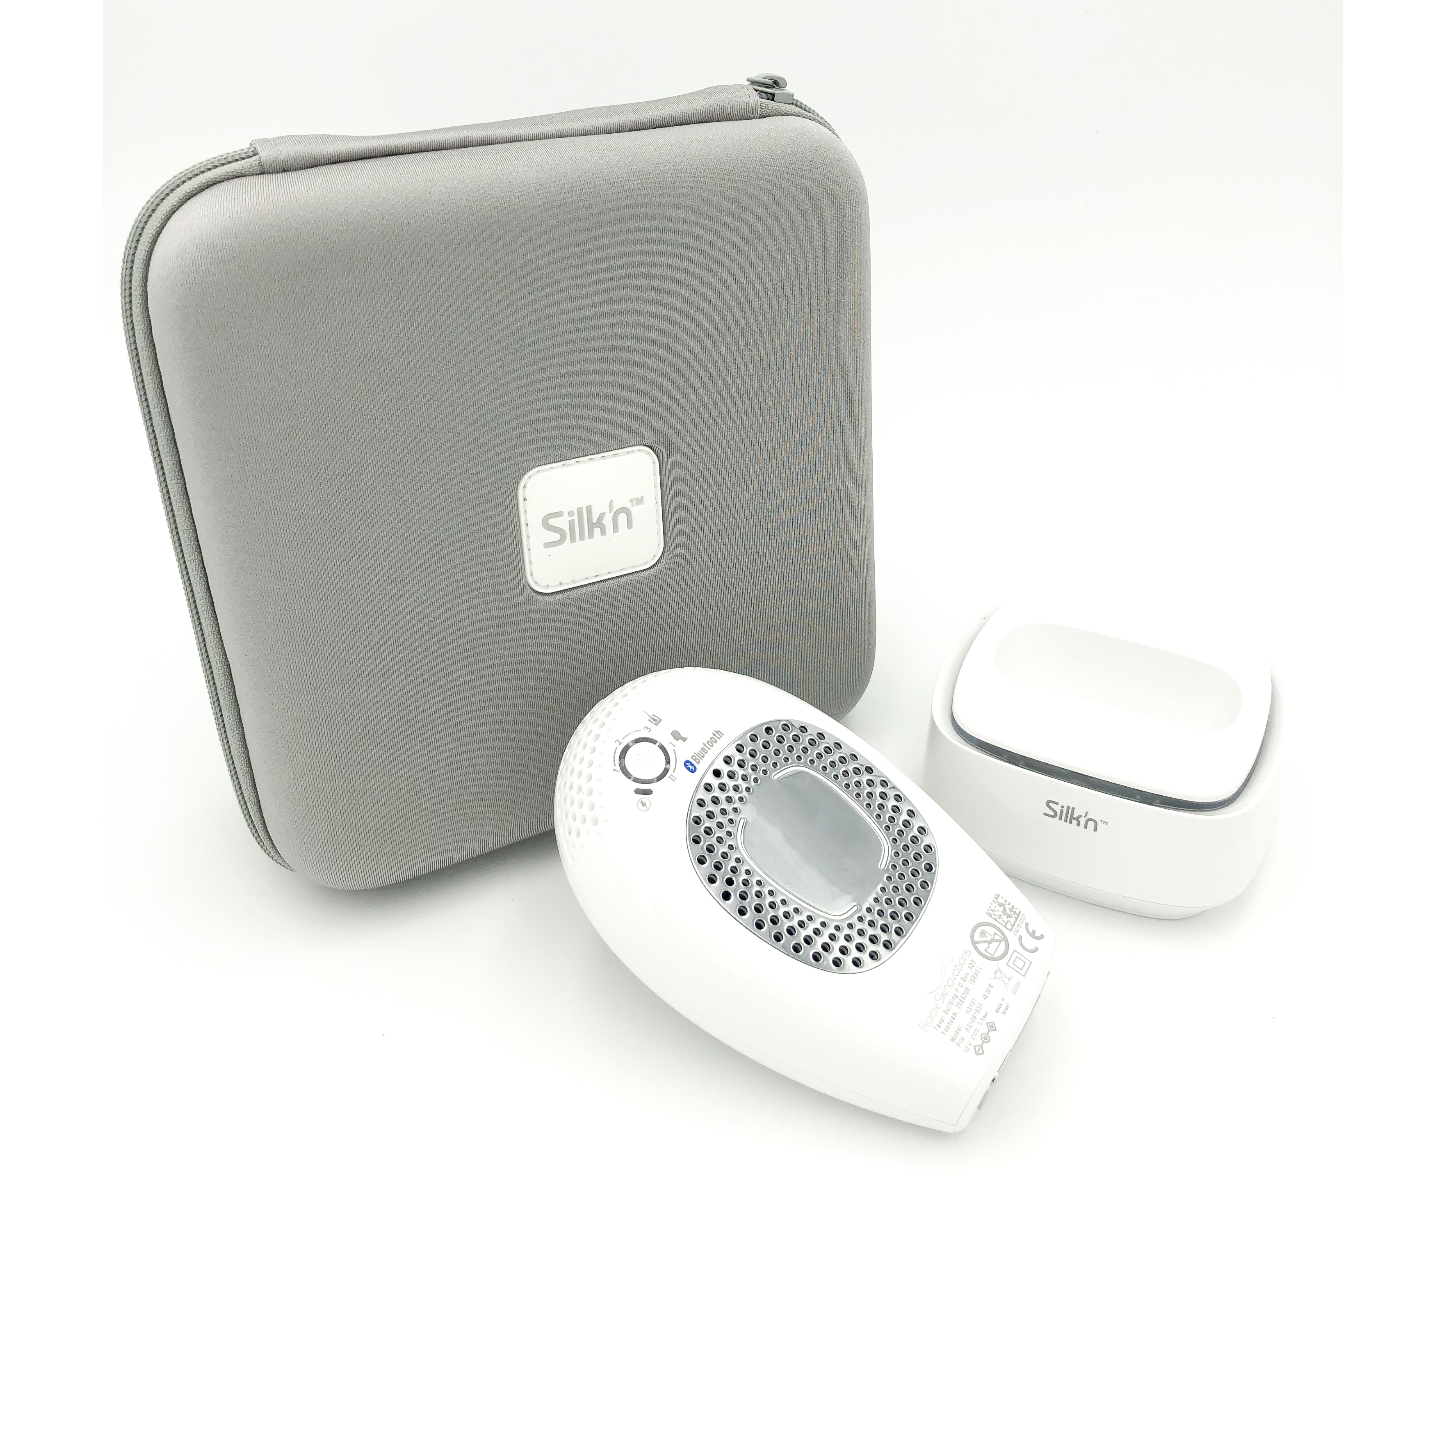 Silkn Infinity The Gold Standard Hair Removal Device with Cleansing Box Bundle.